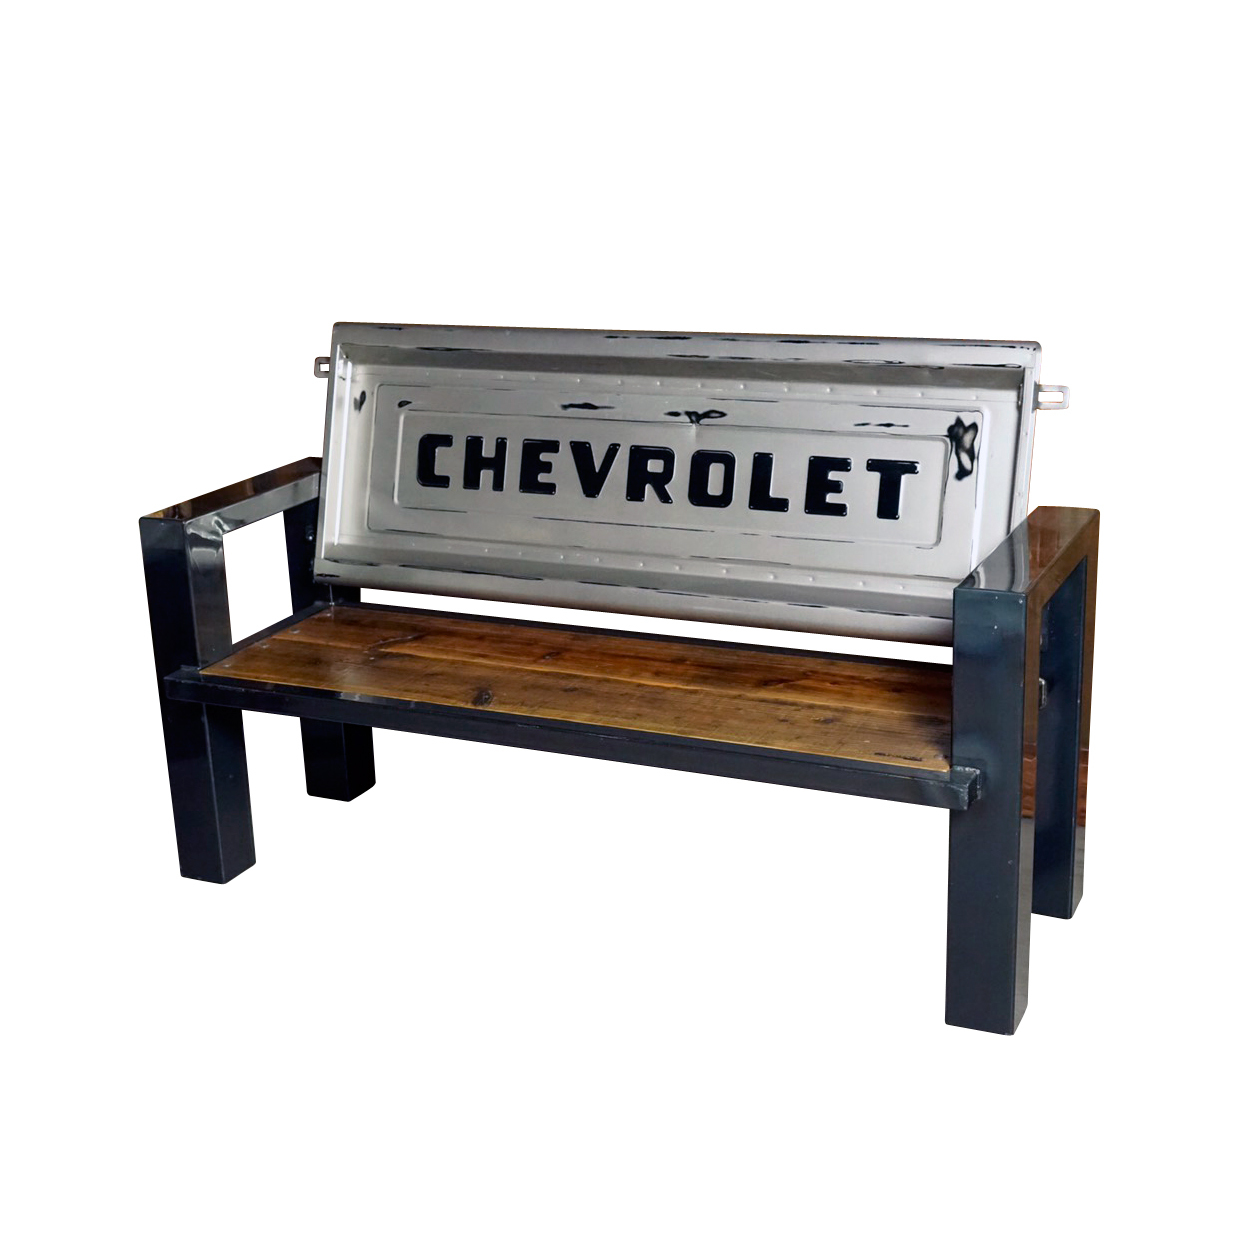 M-LINE CHEVROLET TAILGATE BENCH 【WOOD】テールゲートベンチ